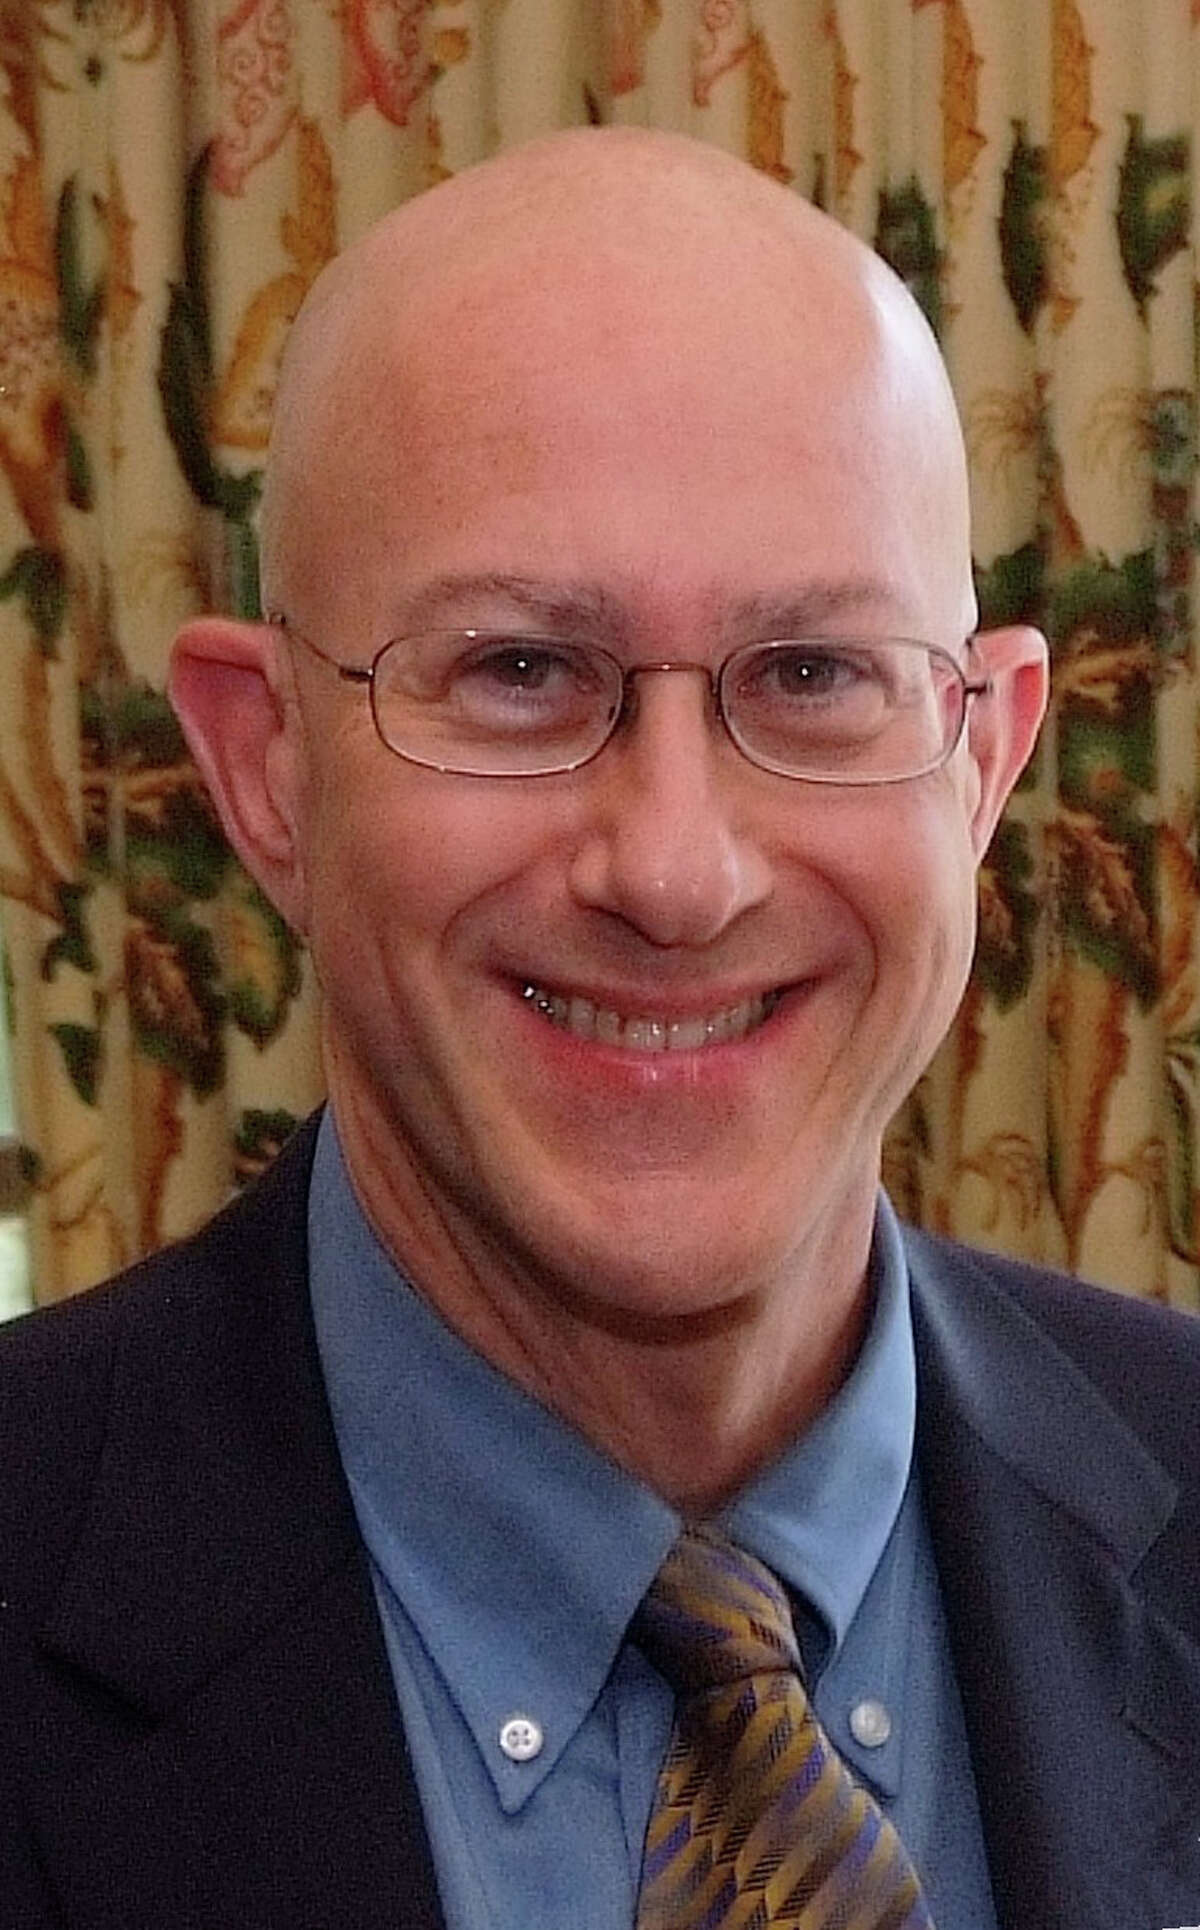 Jeff Weber is rejoining Greenwich-based Blue Star Media Group as a consultant after company CEO Michael Metter left last week amid allegations of securities fraud.